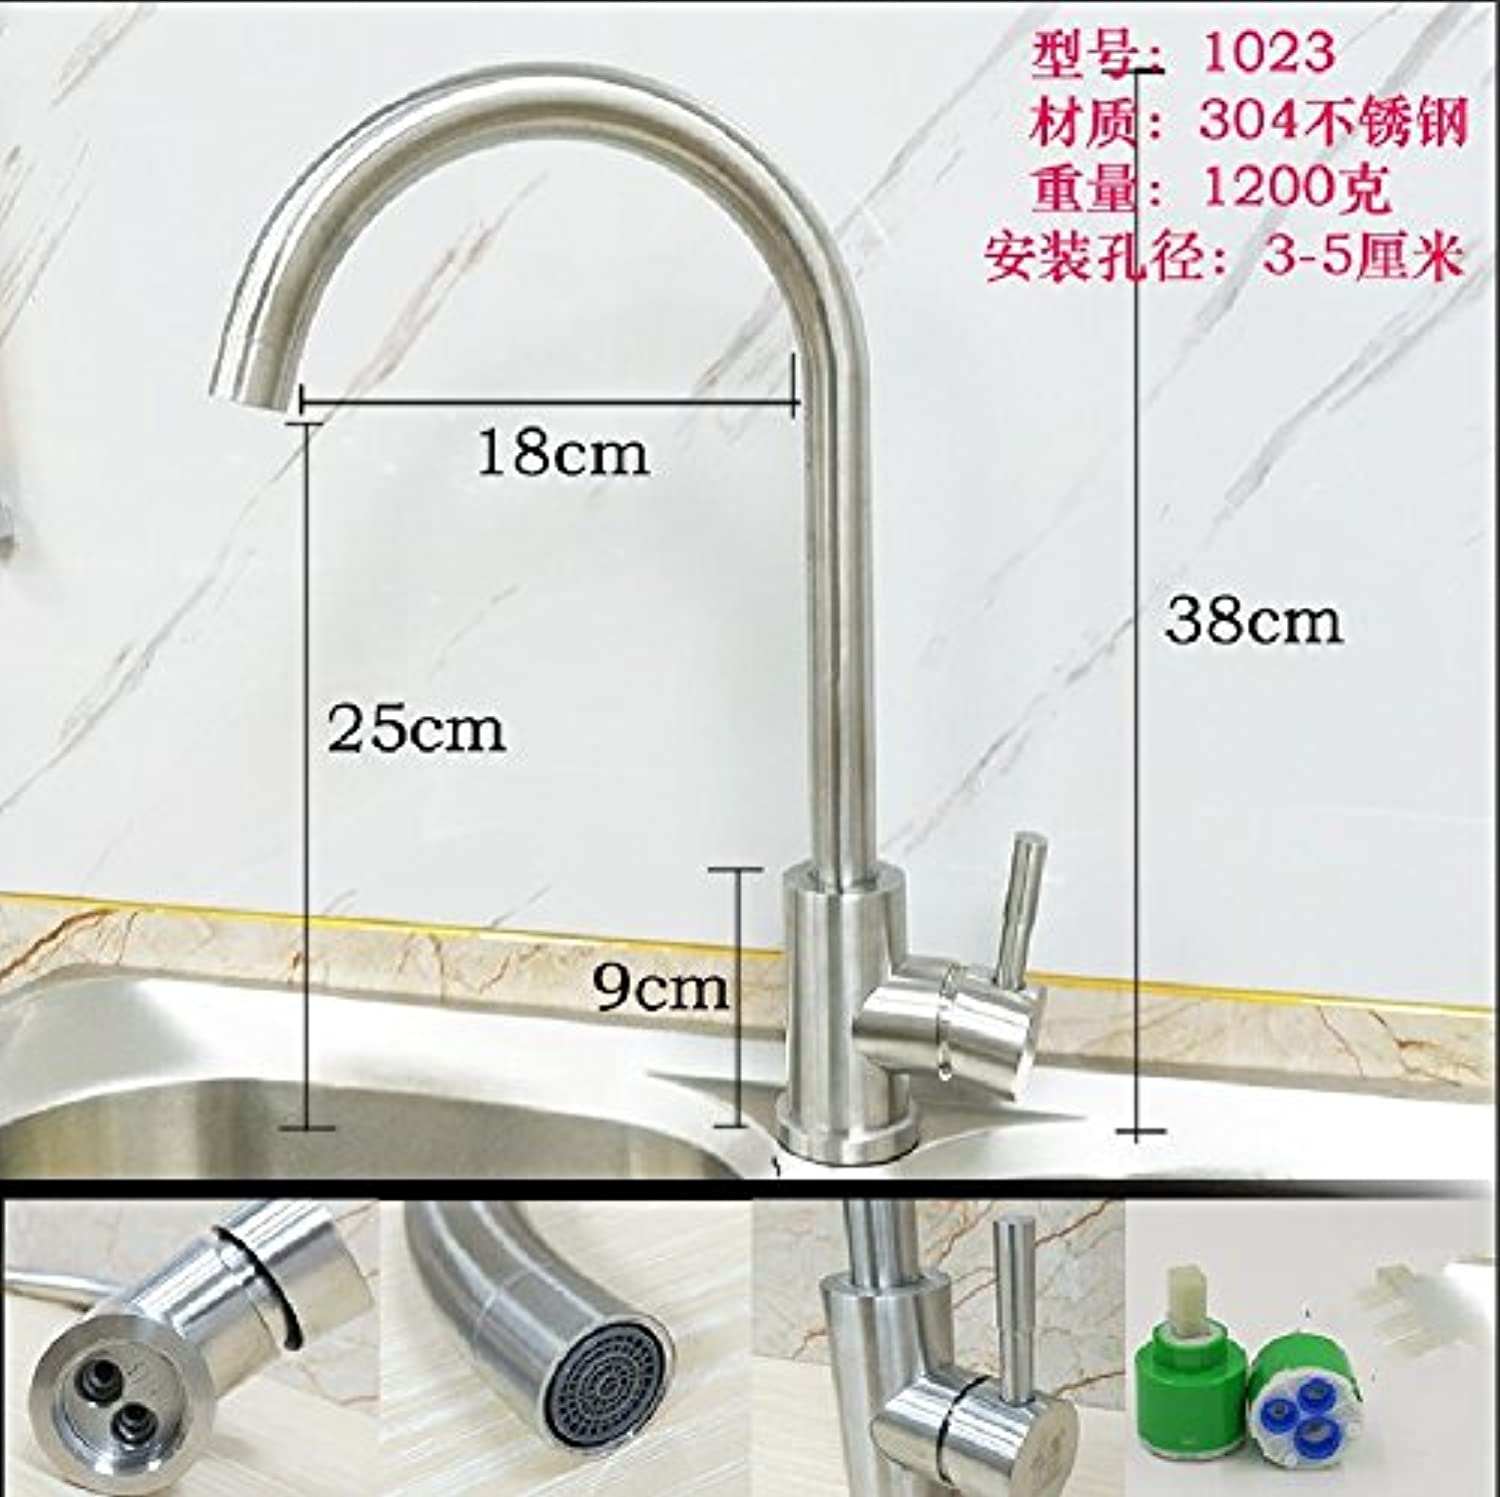 JWLT 304 stainless steel faucet, single cold kitchen washing basin, sink, sink bowl, wire drawing lead free swivel tap,1023 a pair of cold and hot -304 60cm tubes